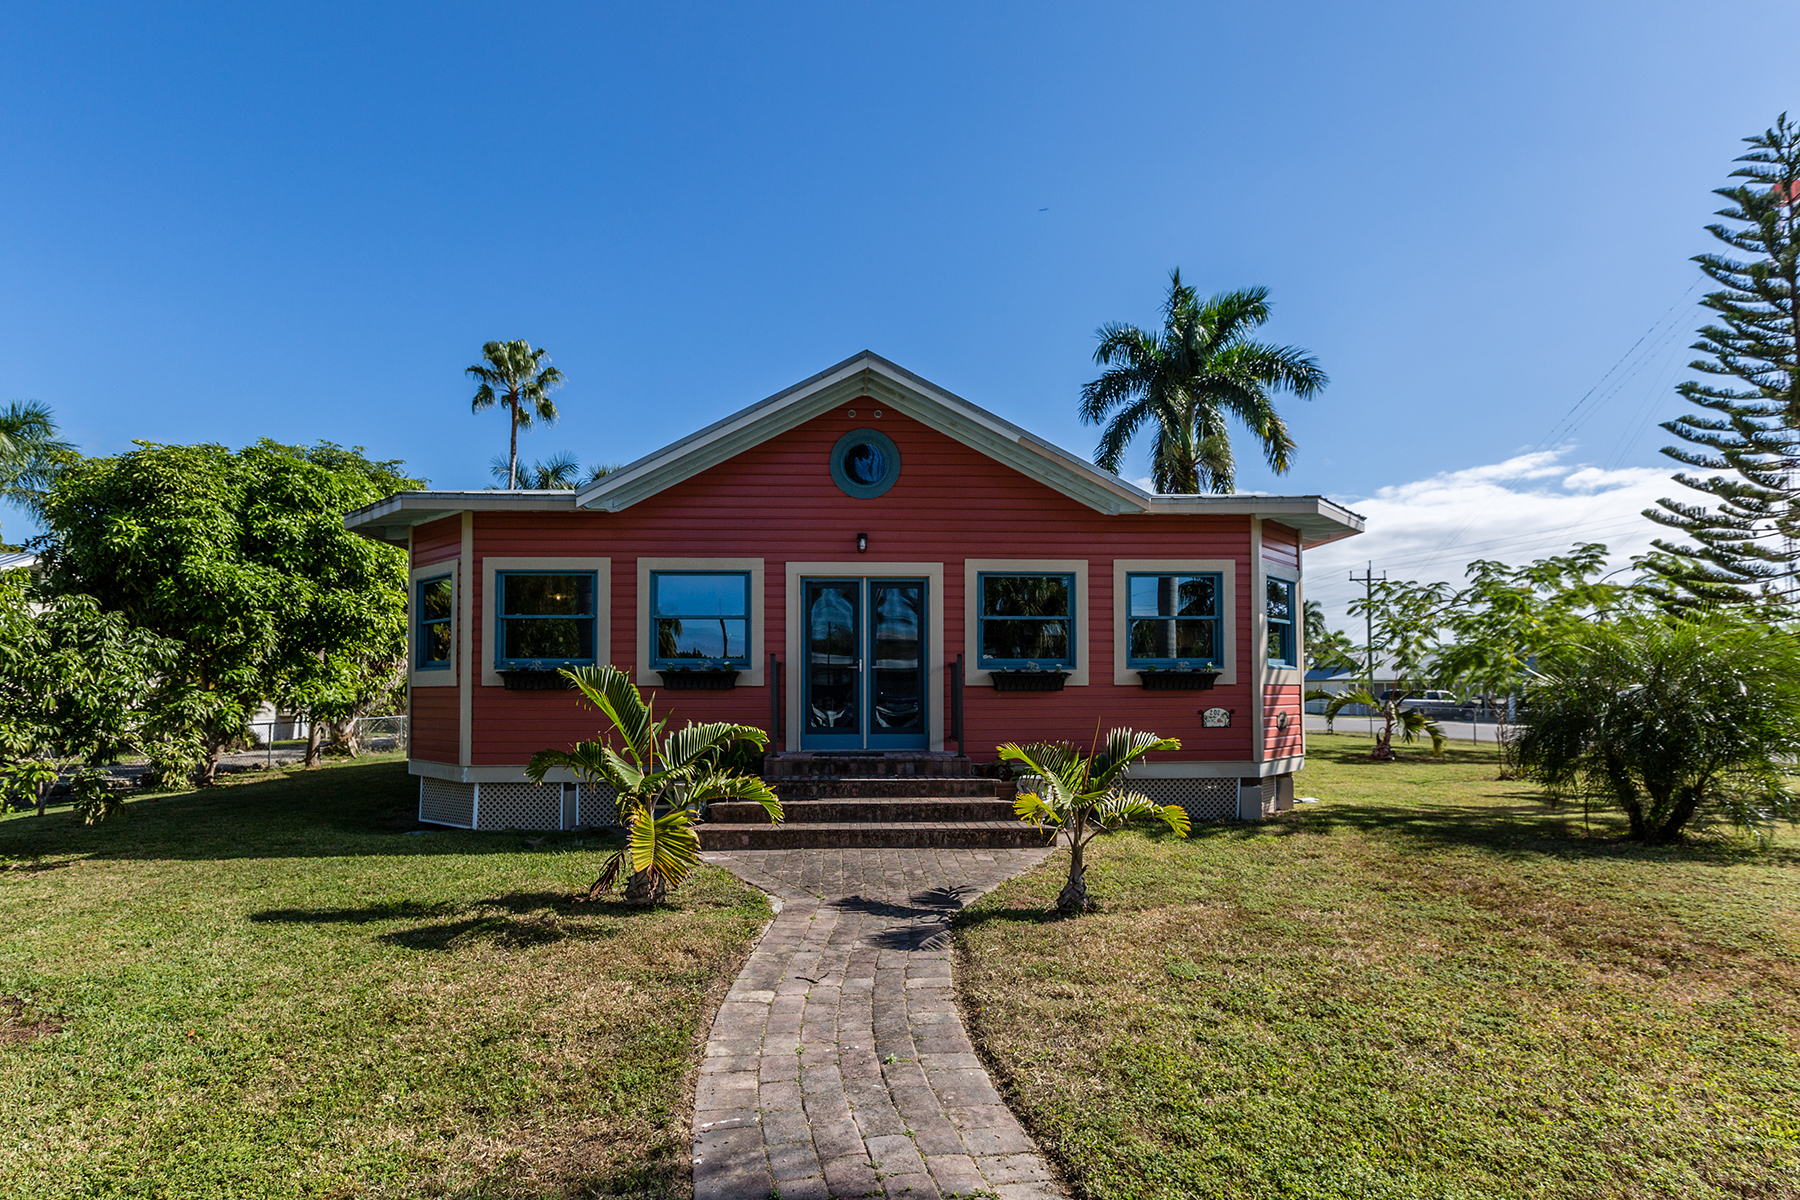 Single Family Home for Sale at EVERGLADES 202 N Storter Ave Everglades City, Florida 34139 United States